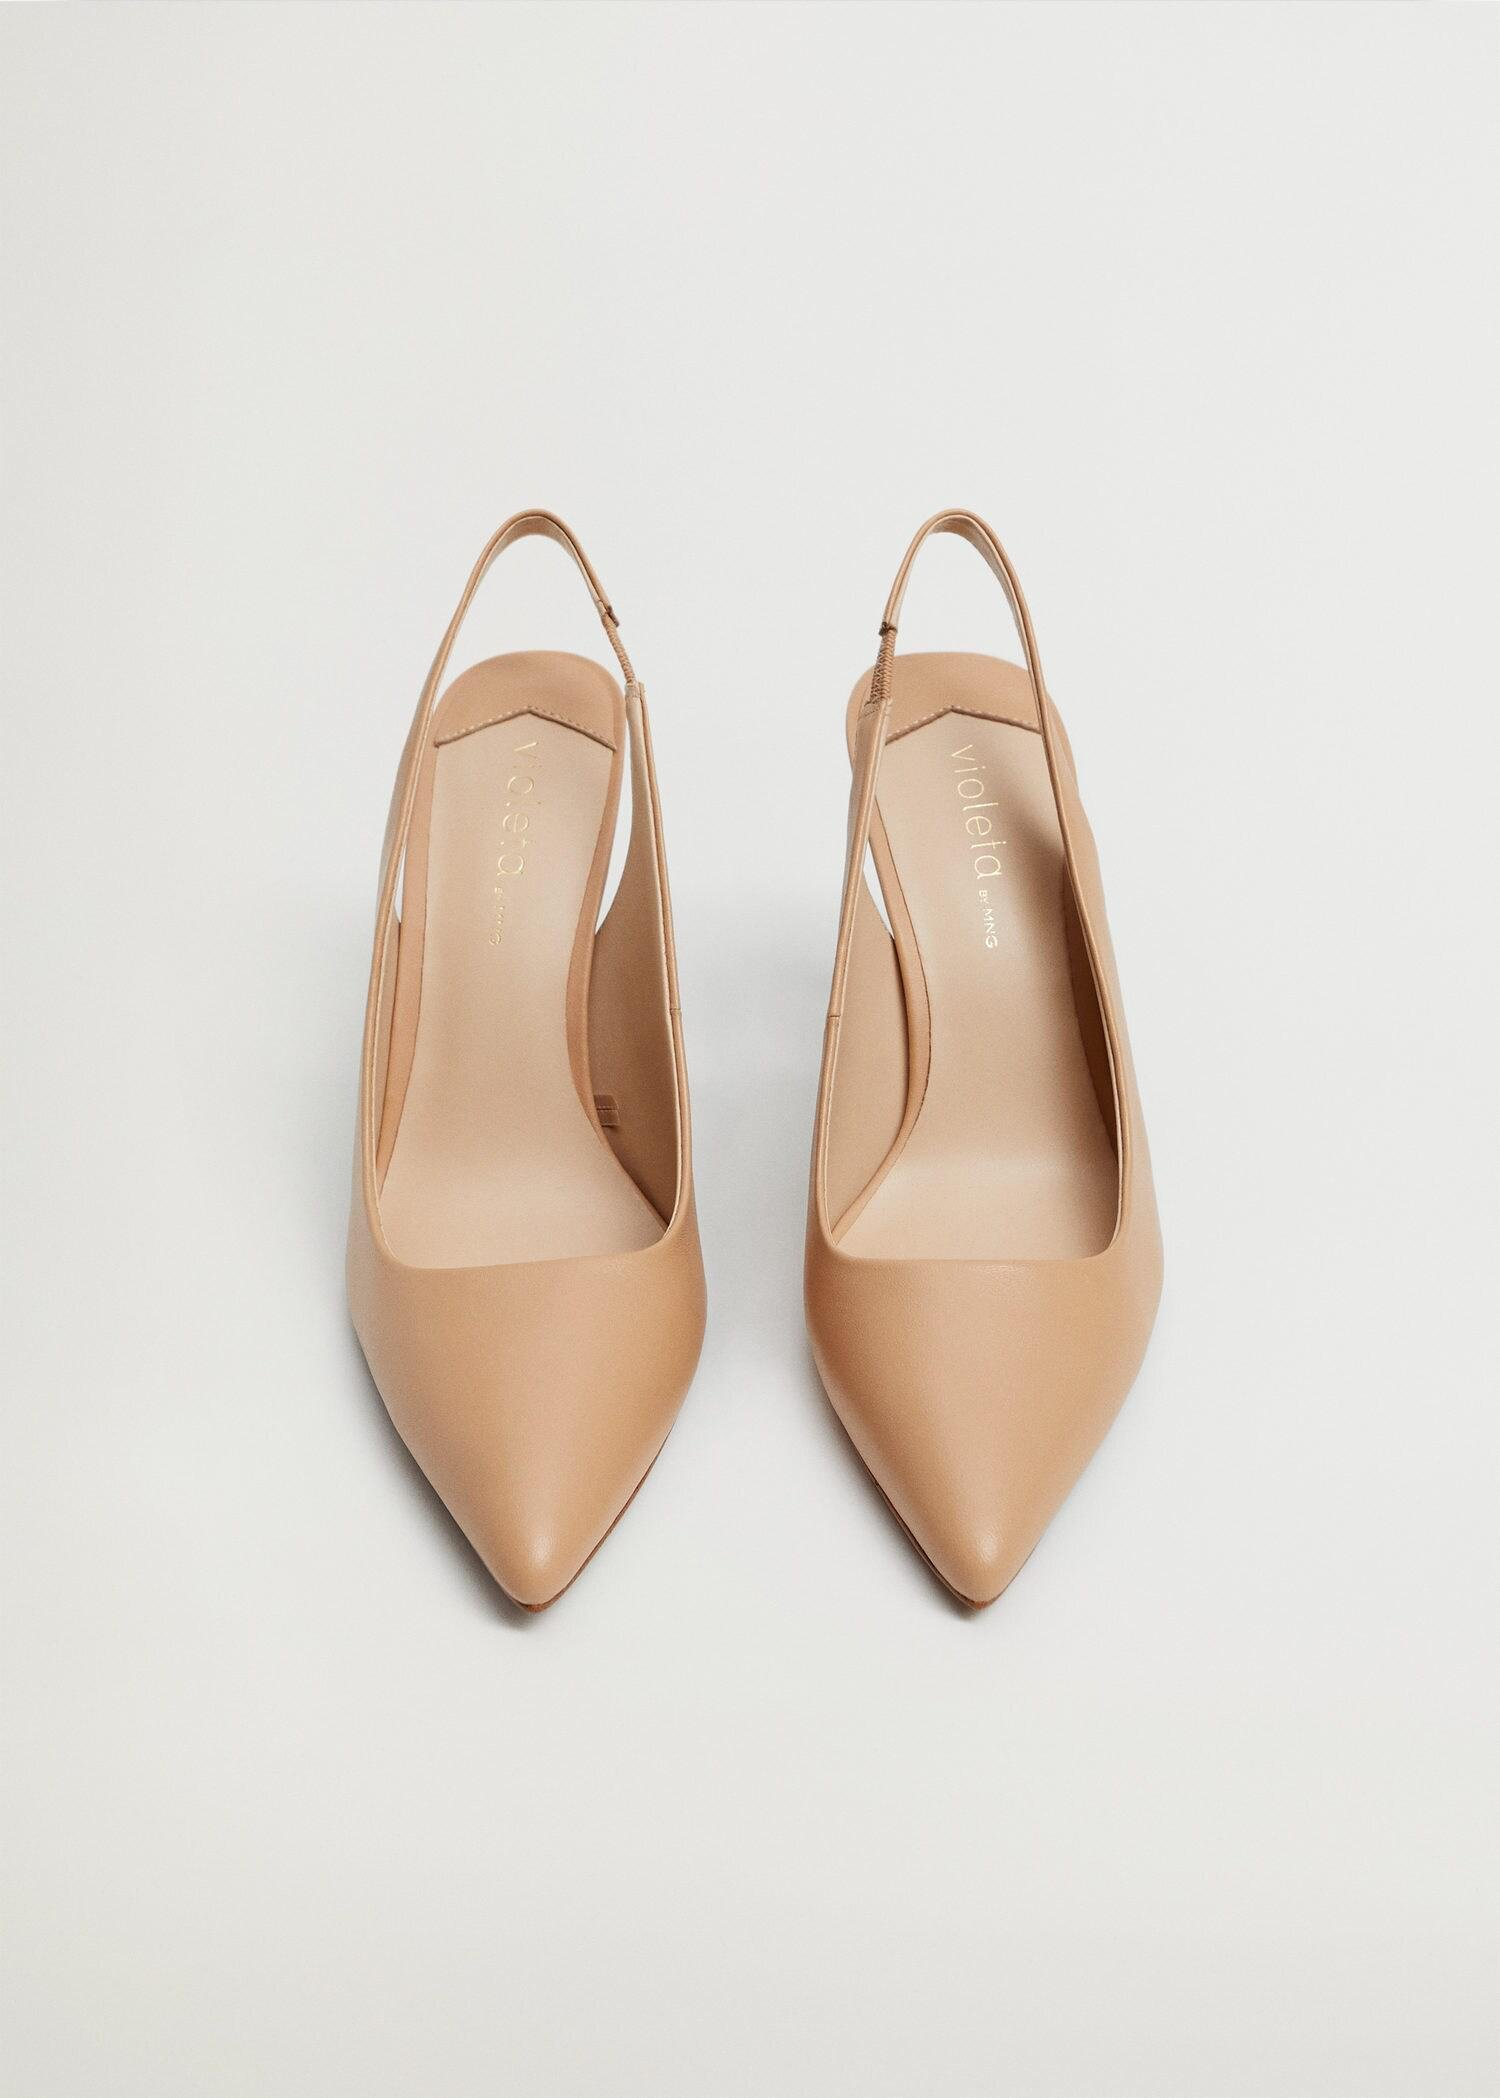 Sling back leather shoes 3